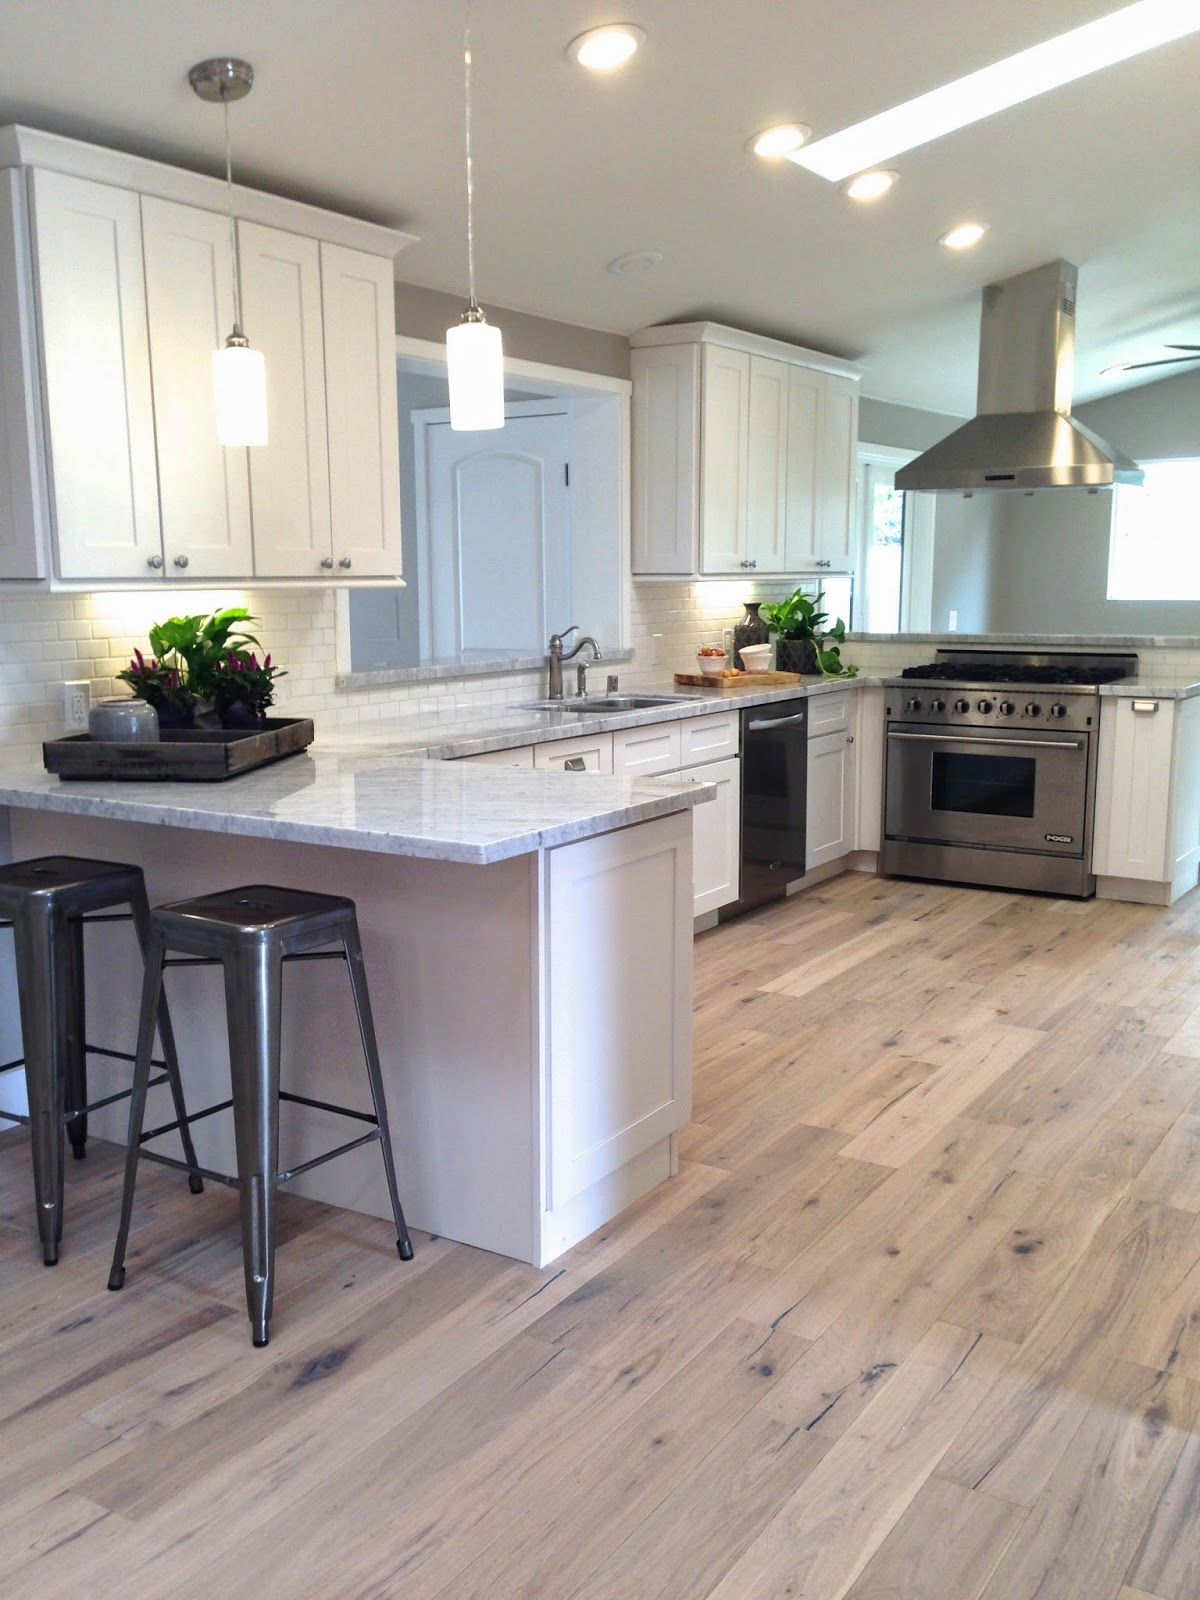 Attractive Light Wood Floors   Greige: Interior Design Ideas And Inspiration For The  Transitional Home : Rossmoor House Finish